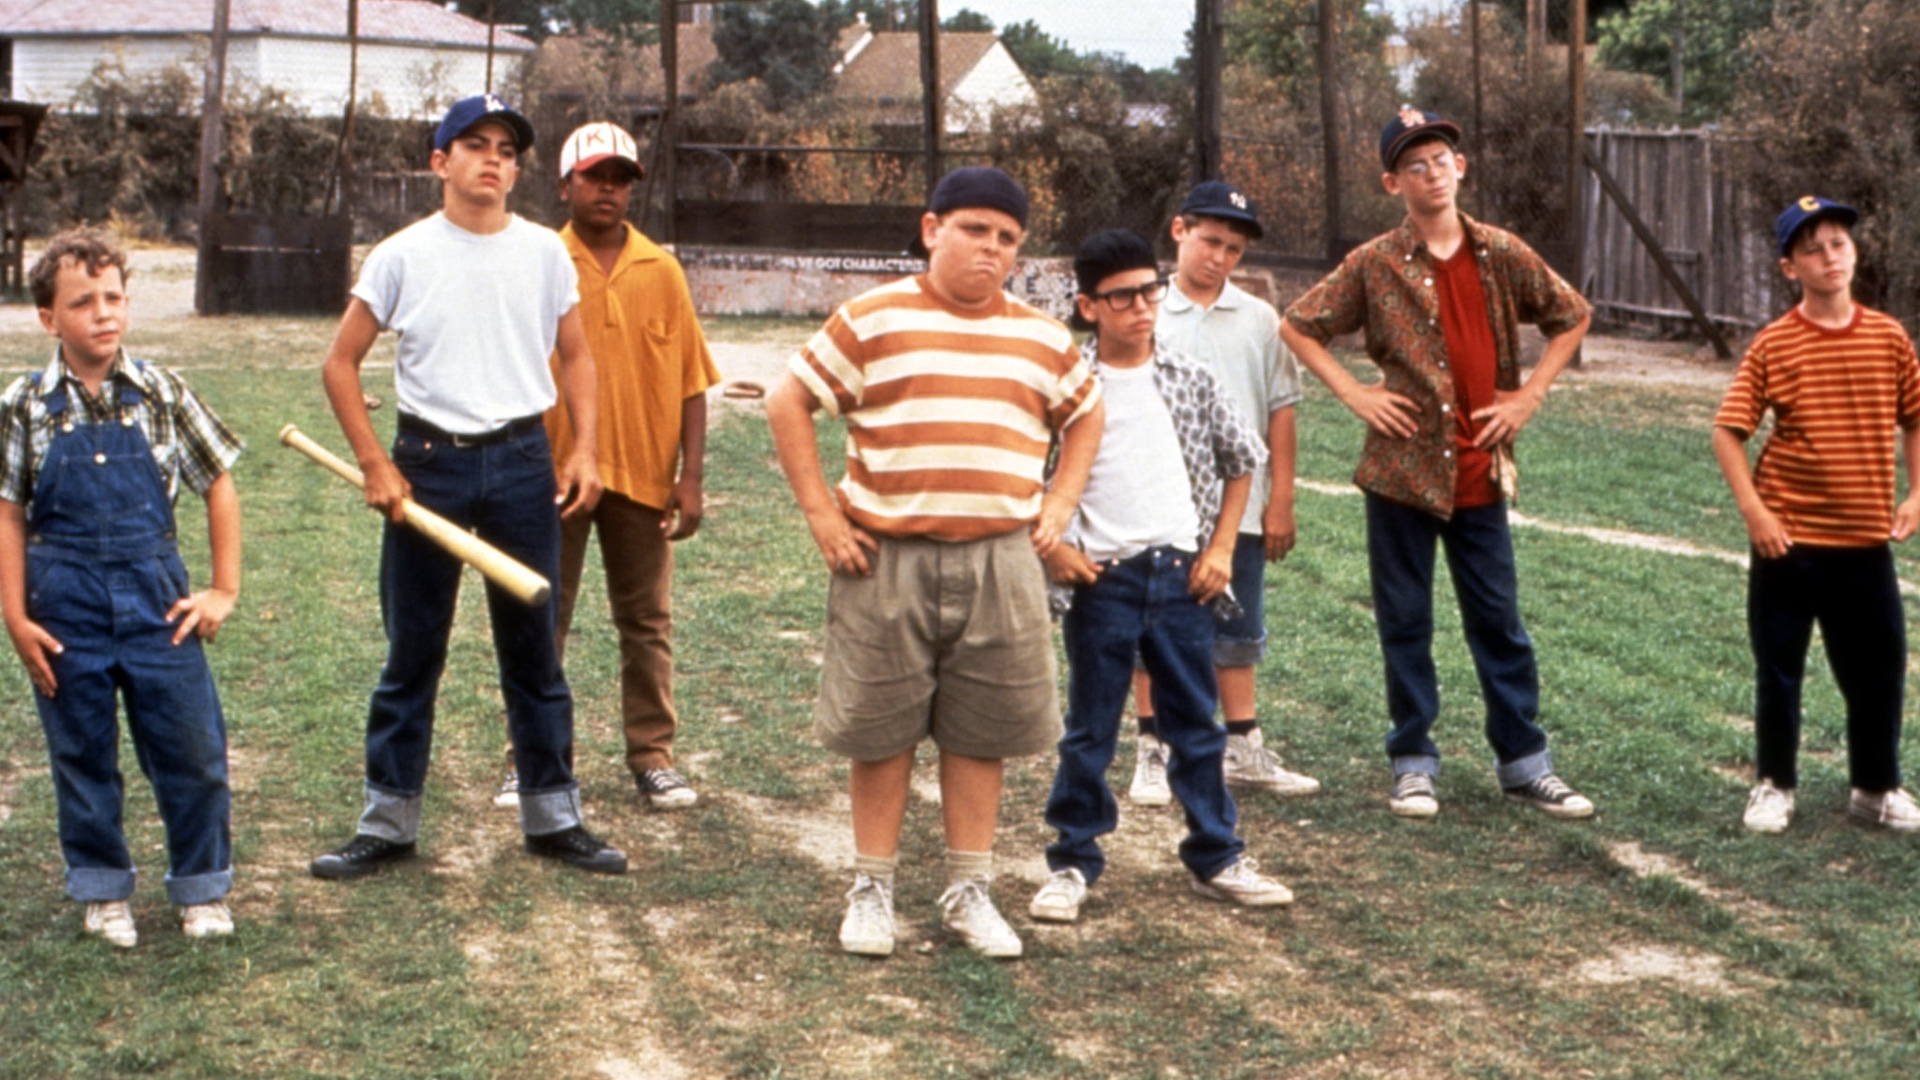 the-sandlot-sequel-series-is-coming-to-disney-the-original-creator-and-cast-will-return-social.jpg